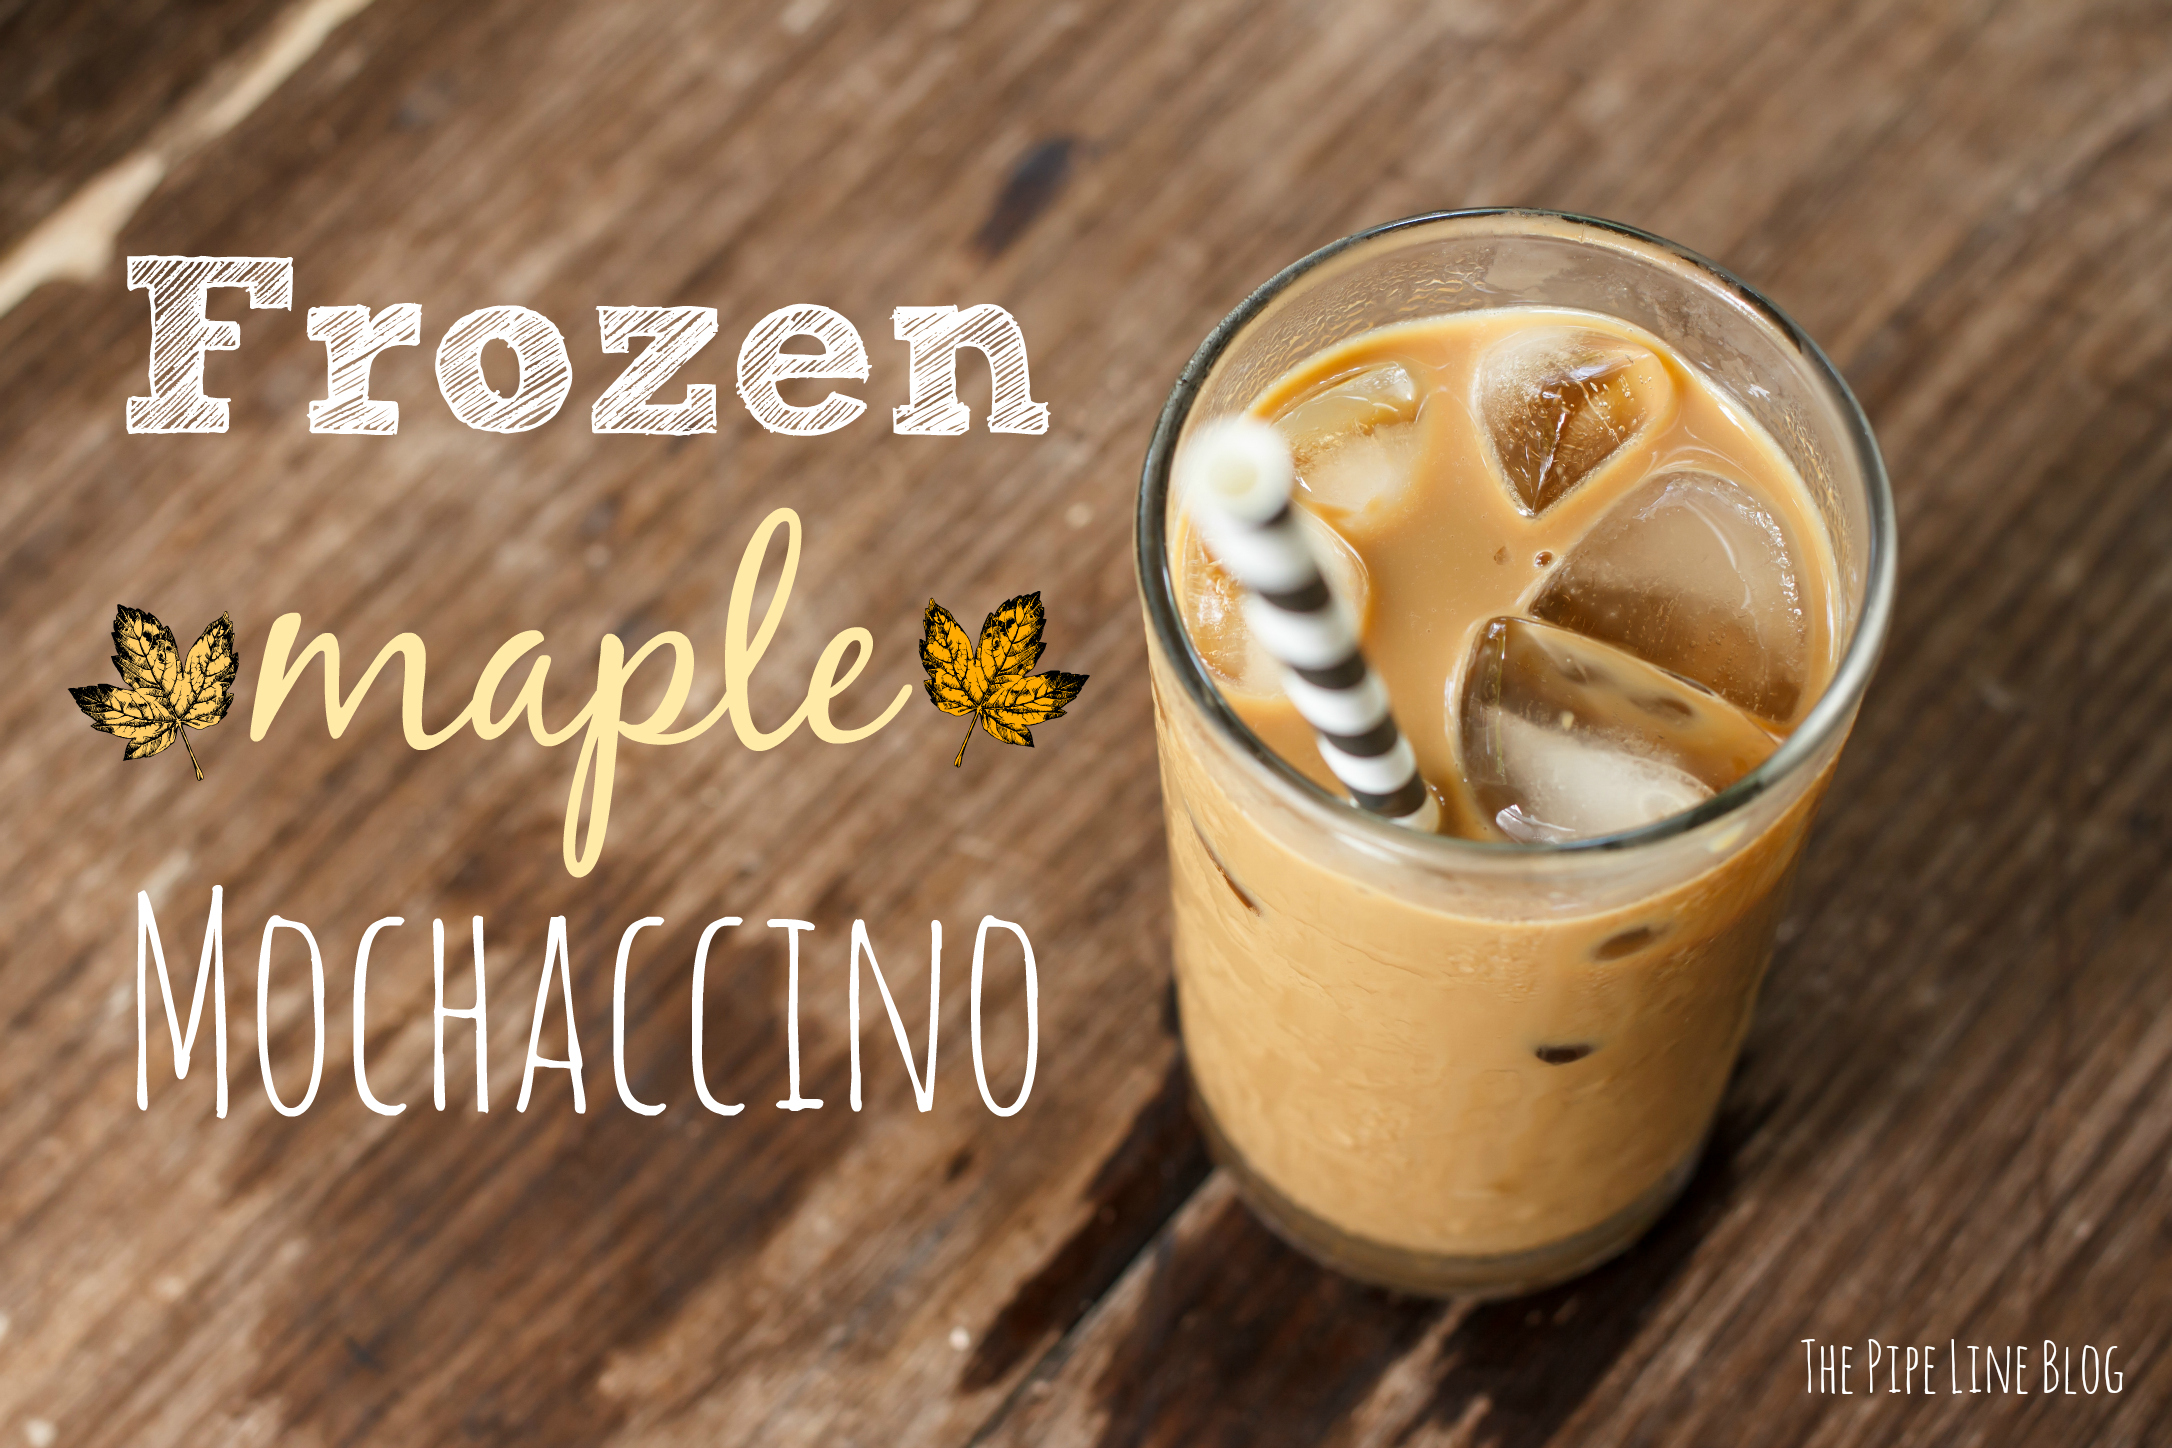 Piping Rock - The Pipe Line - Frozen Maple Mochaccino Recipe